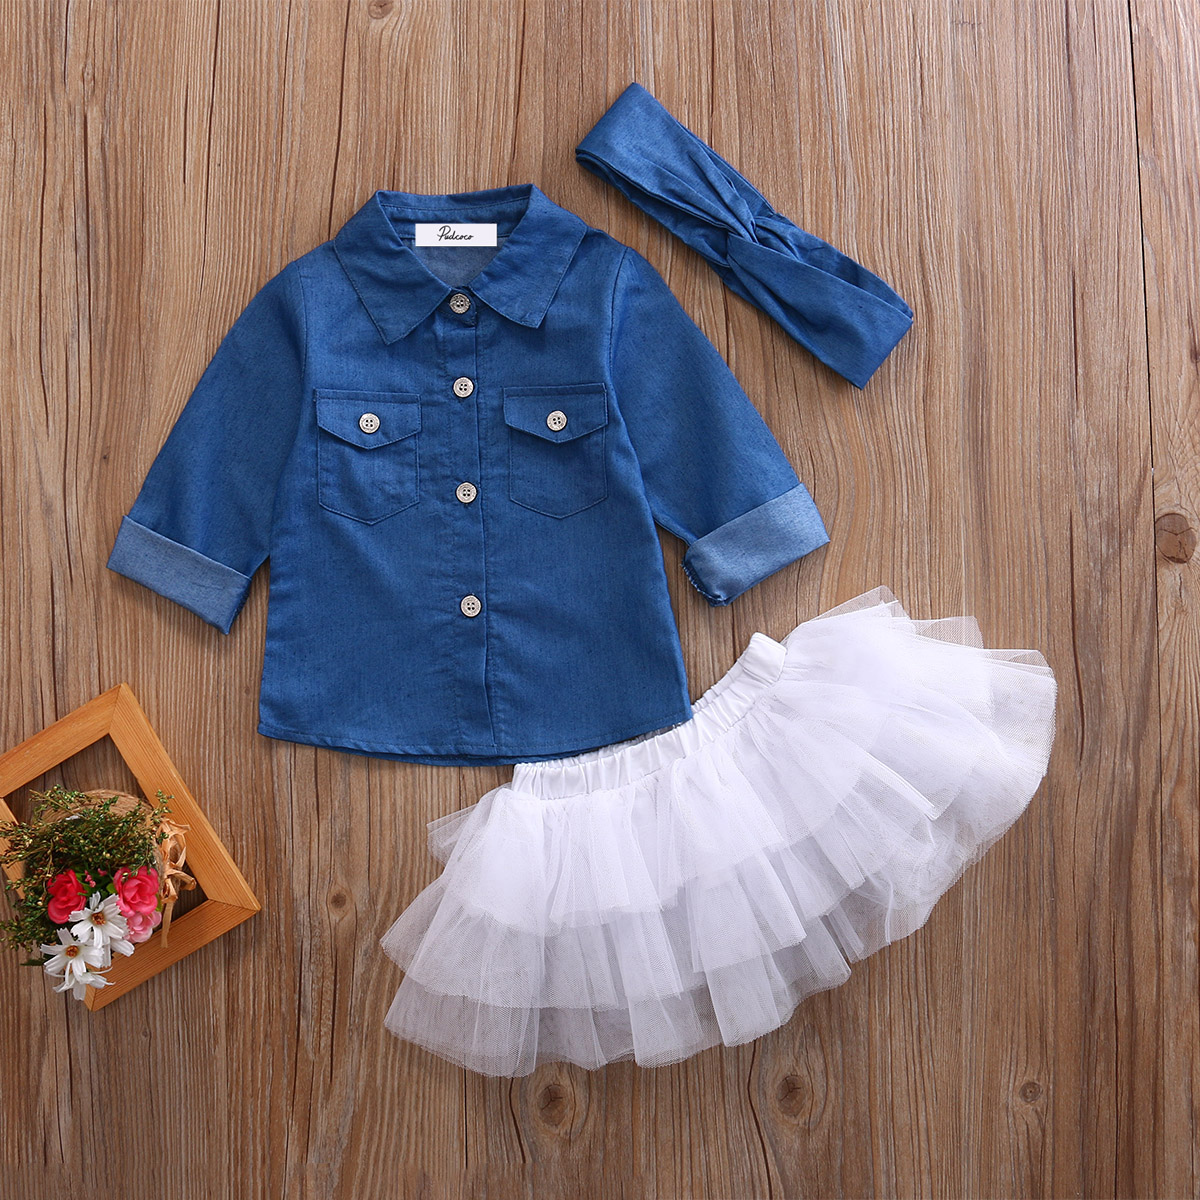 Kids Baby Girls Denim Tops T shirt+White Tutu Skirts+Headband 3pcs Outfits Clothes Set Summer Long Sleeve Children Clothing Sets